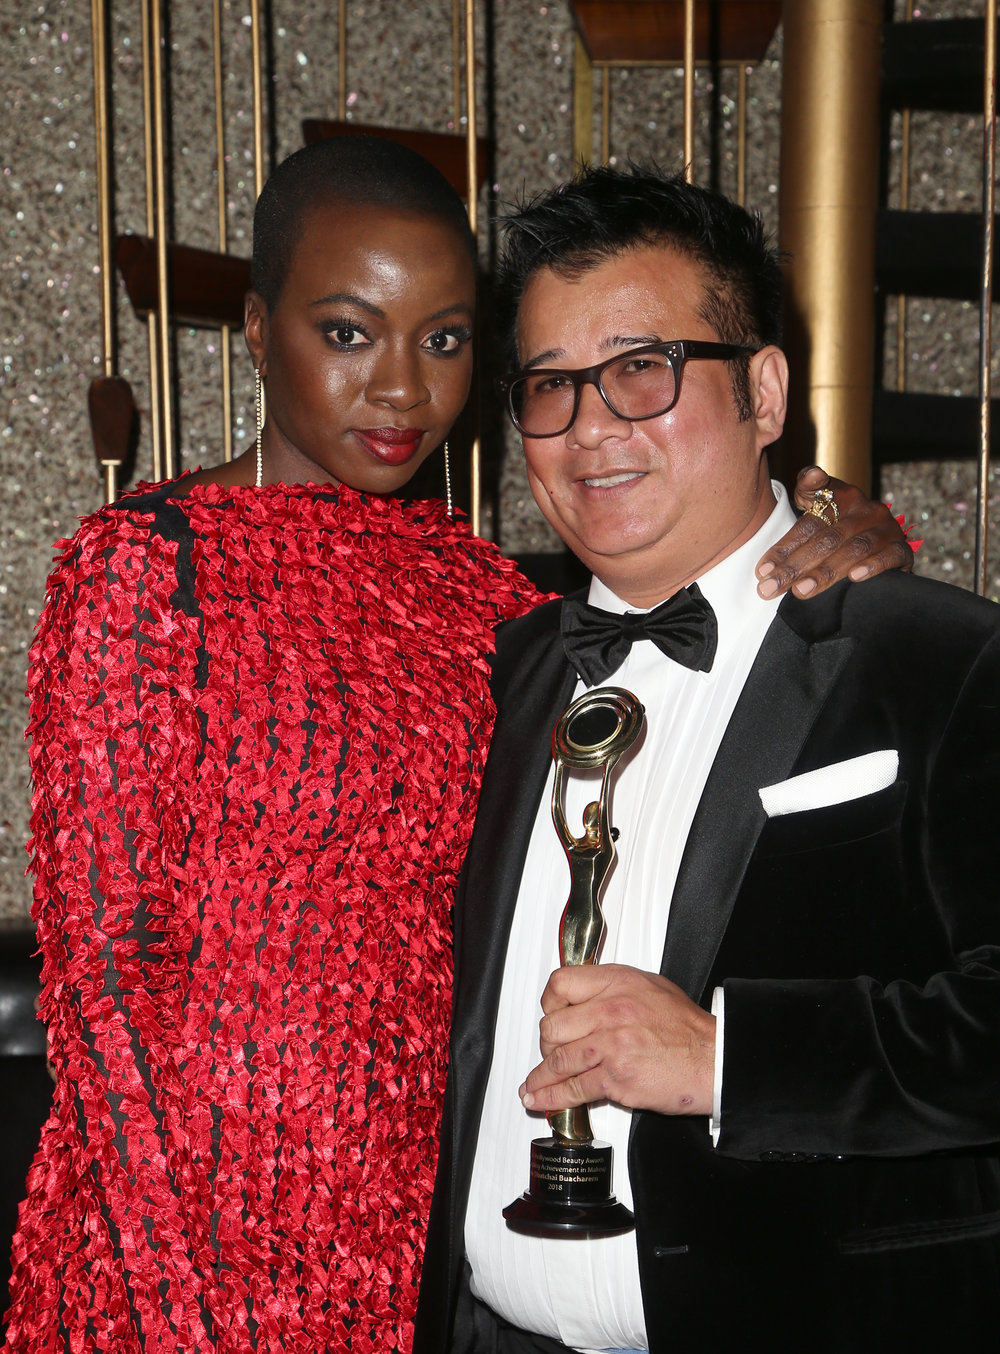 Danai Gurira and Tym Shutchai Buacharern | Feb 25, 2018, Hollywood Beauty Awards held at the Avalon